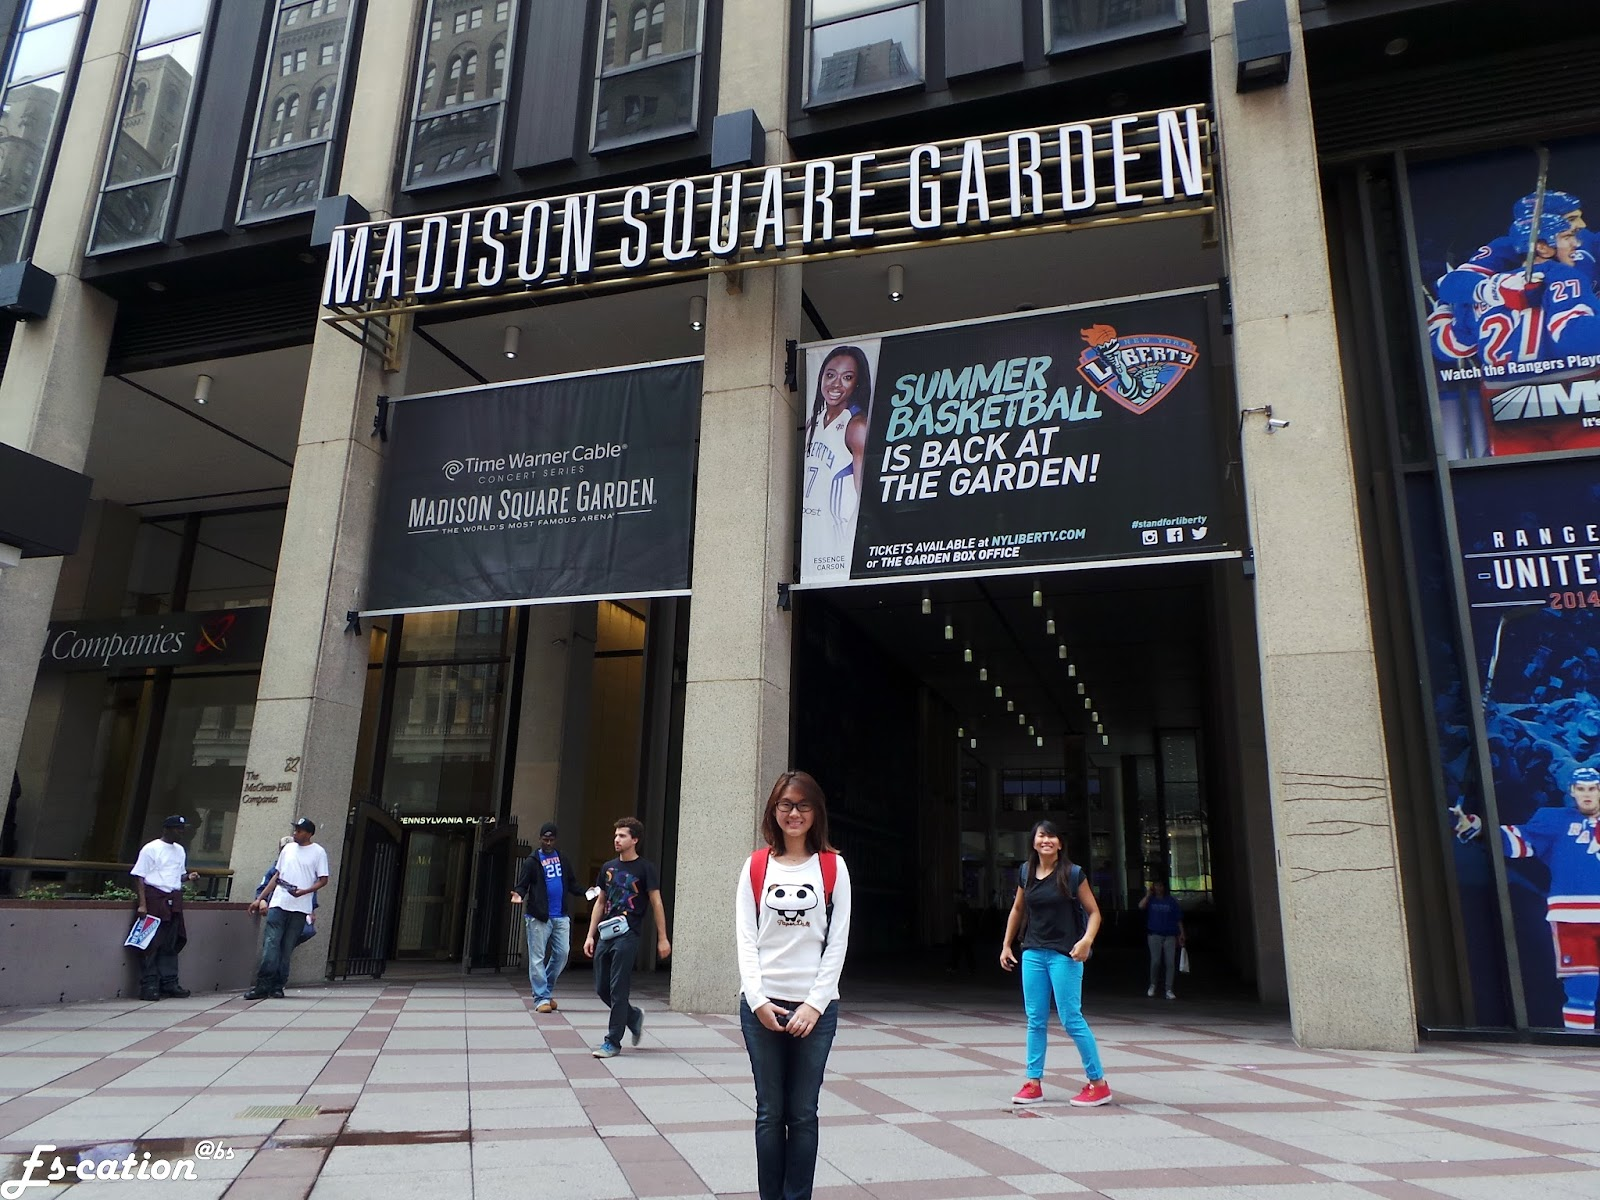 Es Cation New York Madison Square Garden All Access Tour